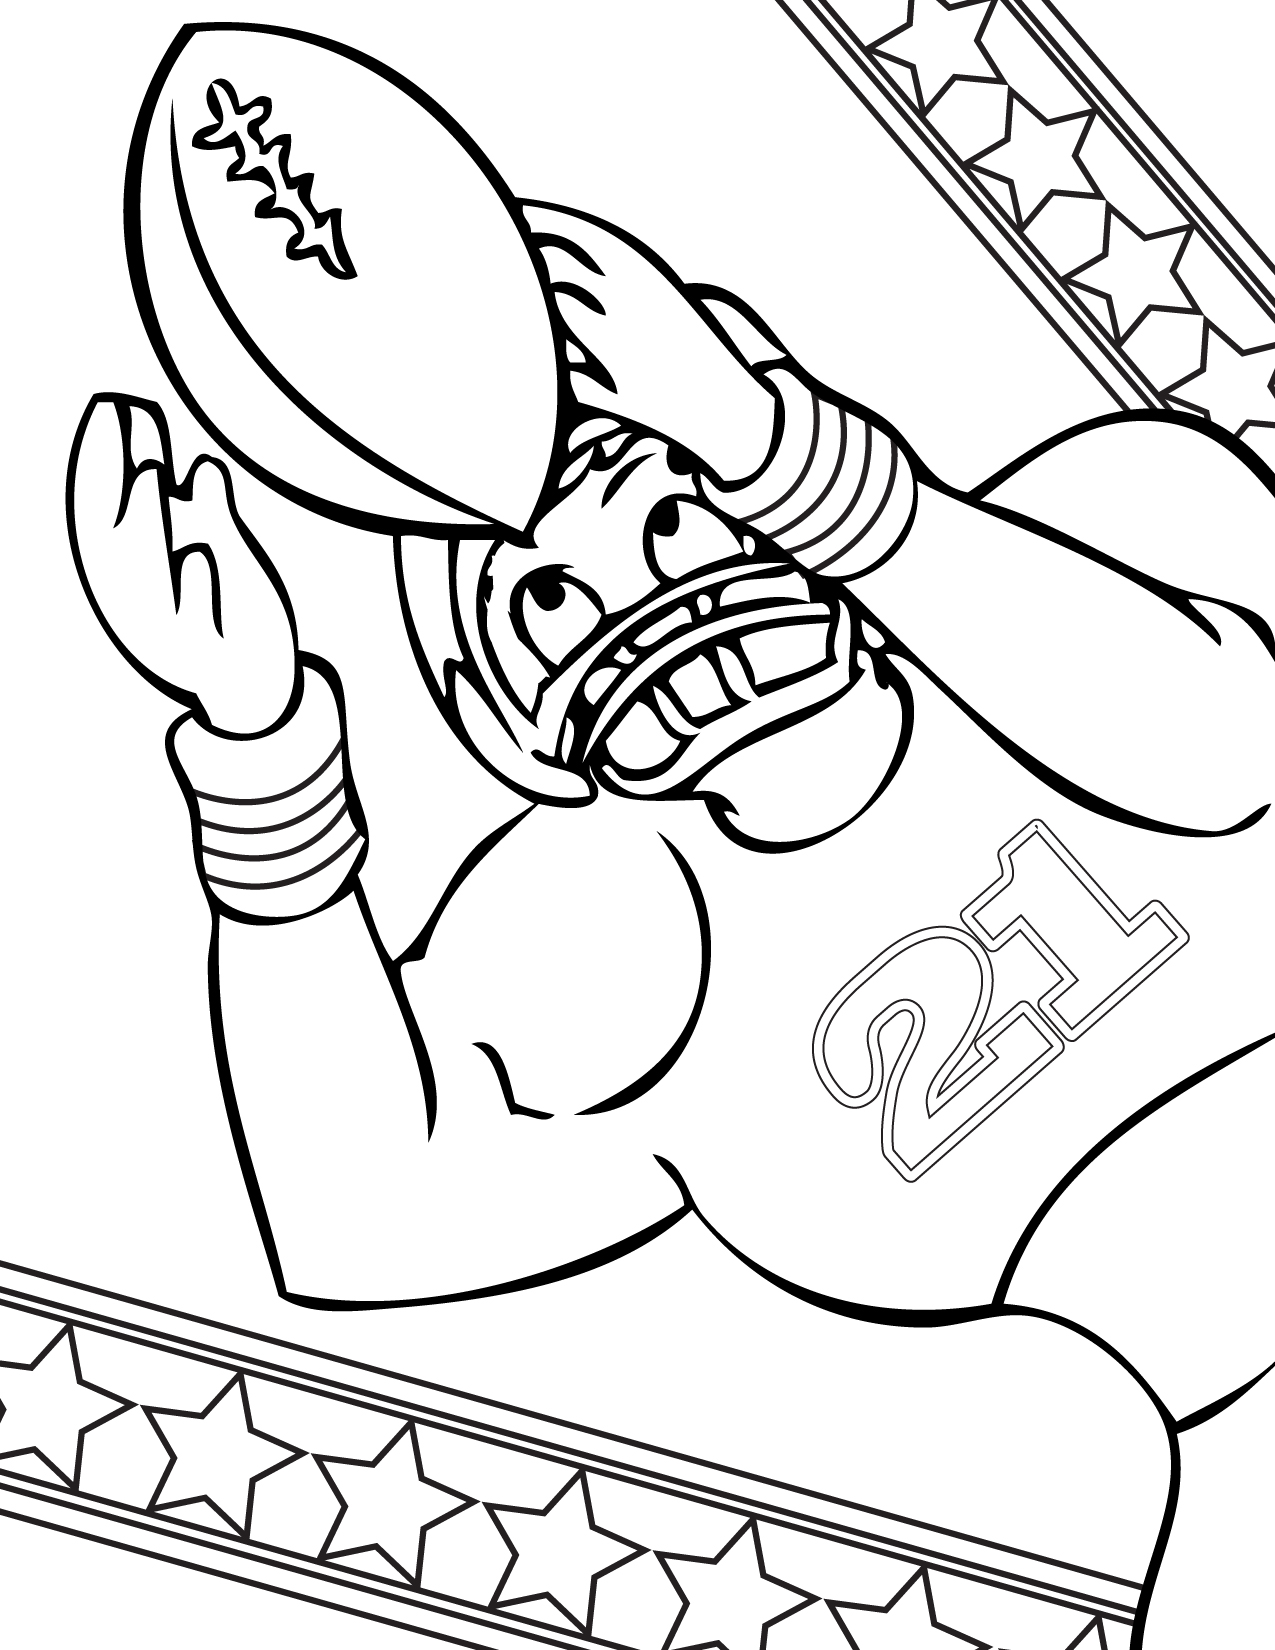 Printable Sports Coloring Pages | Coloring Me